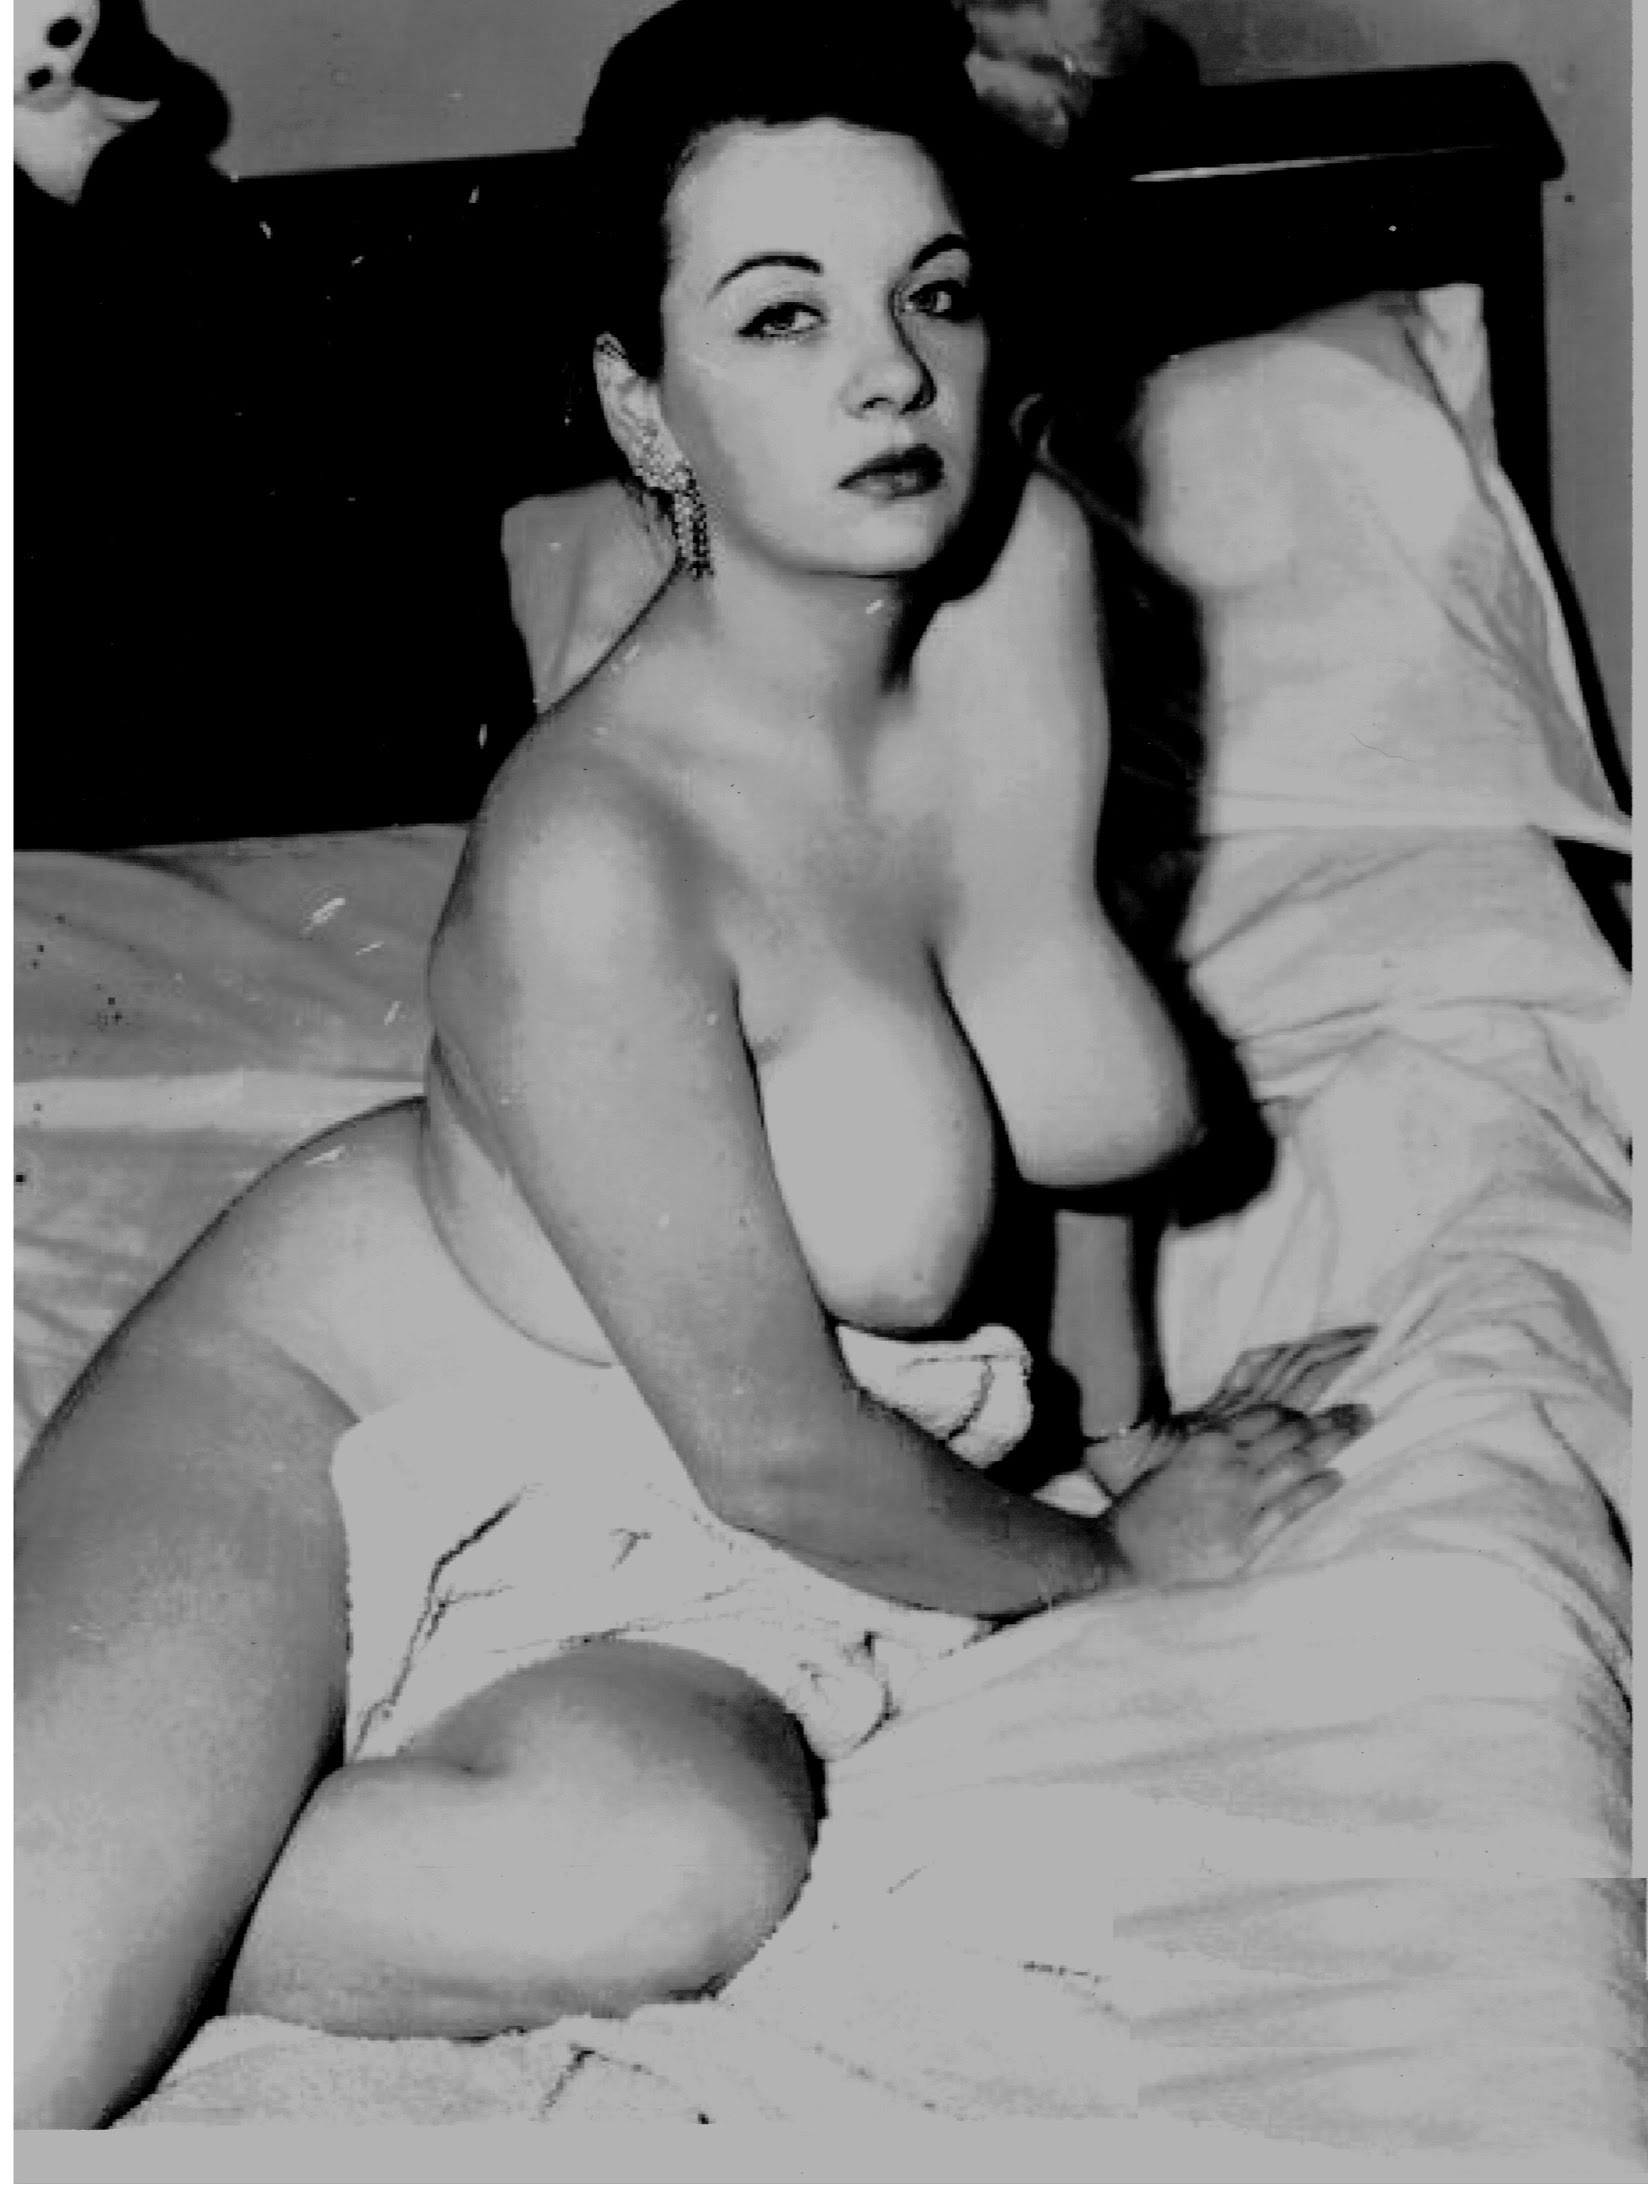 Yvonne De Carlo Nude Pictures : yvonne, carlo, pictures, Yvonne, Carlo, XPornxNakedx